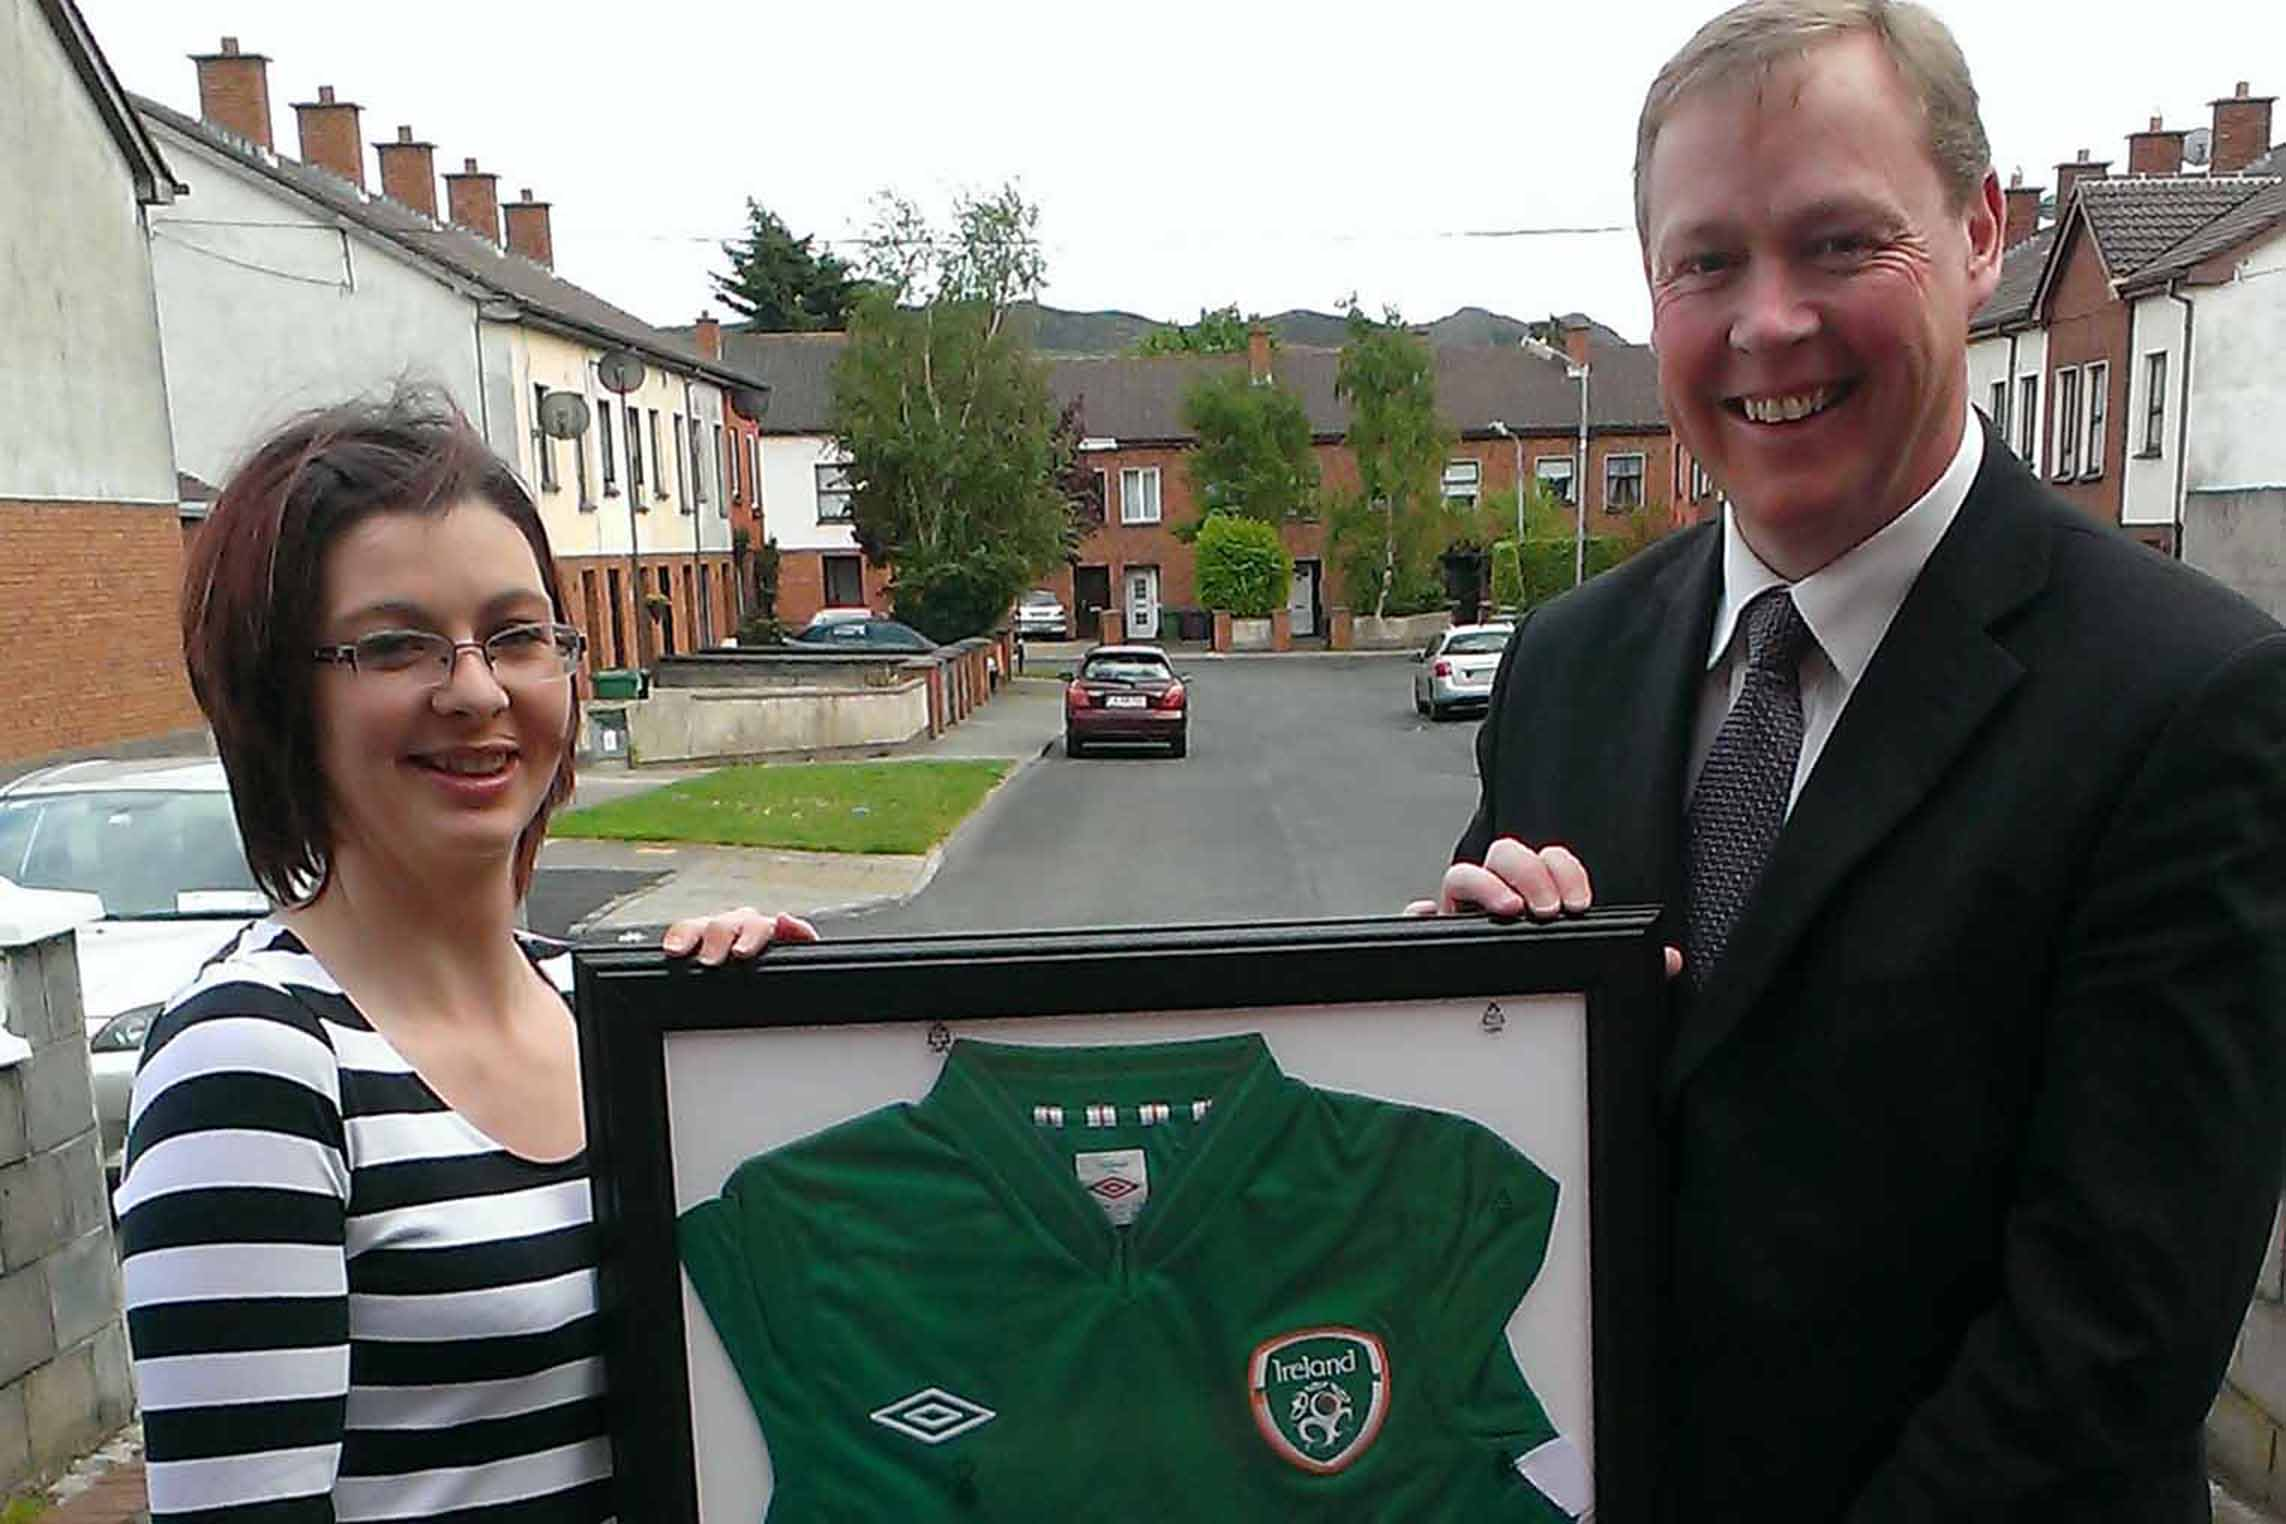 Danielle O' Brien with David Grant and the signed Irish soccer jersey which David donated to HeadsUp